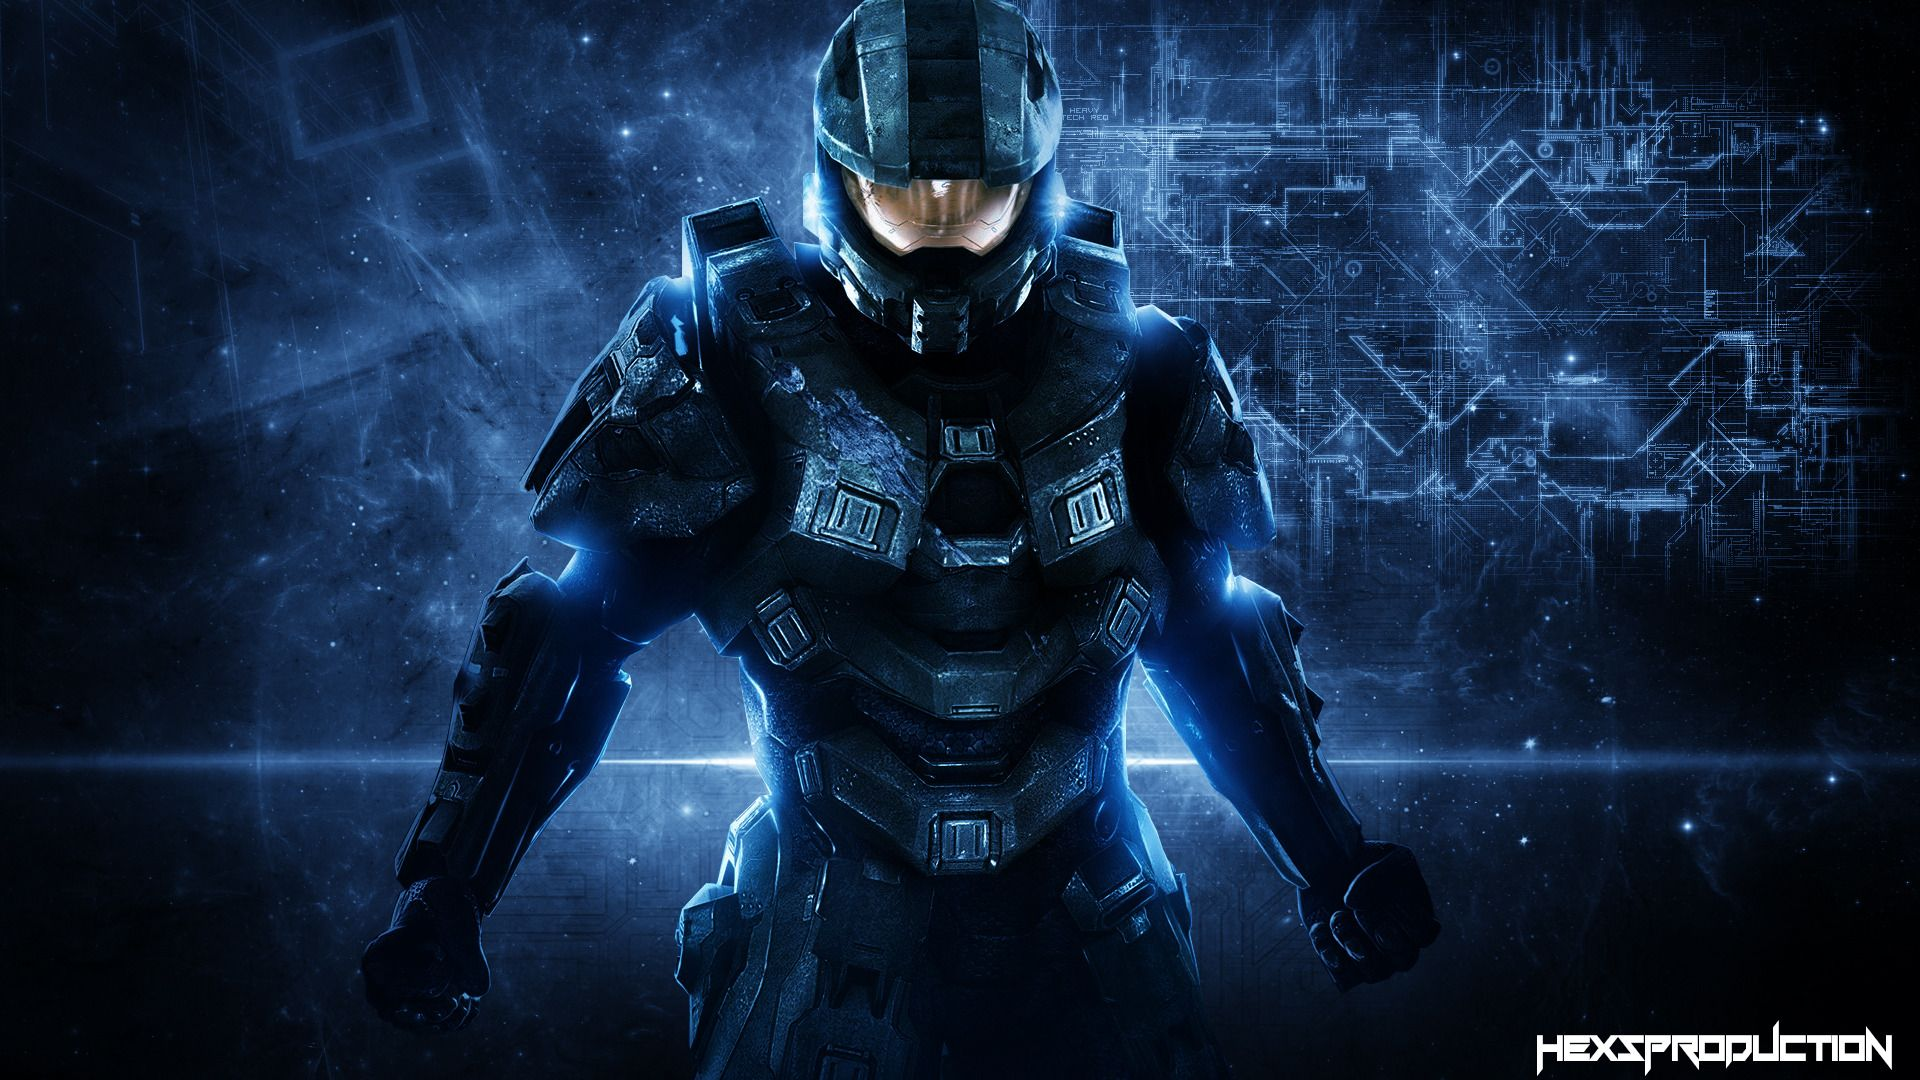 Halo hd wallpapers backgrounds wallpaper hd wallpapers halo hd wallpapers backgrounds wallpaper voltagebd Choice Image